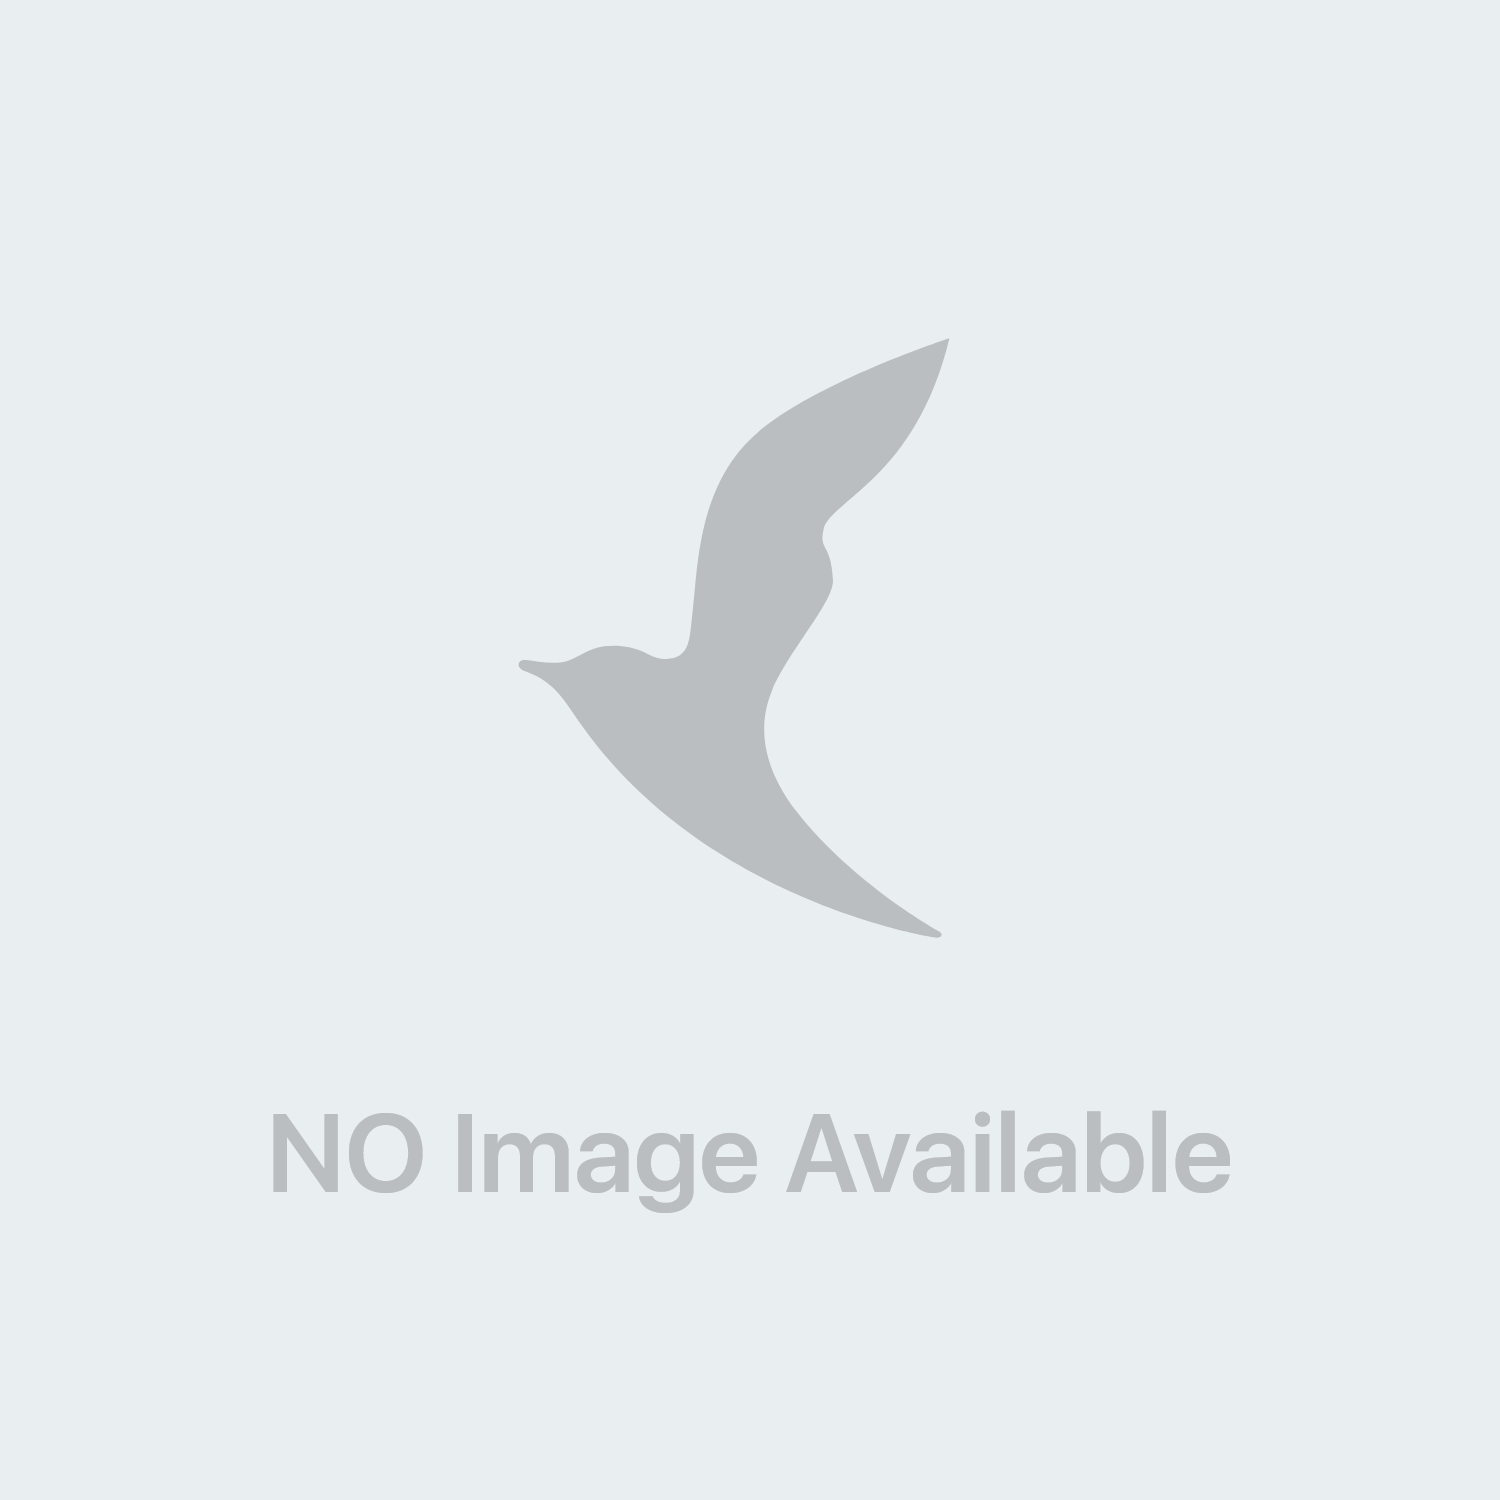 Mangostano Plus, 60 compresse, 1000 mg